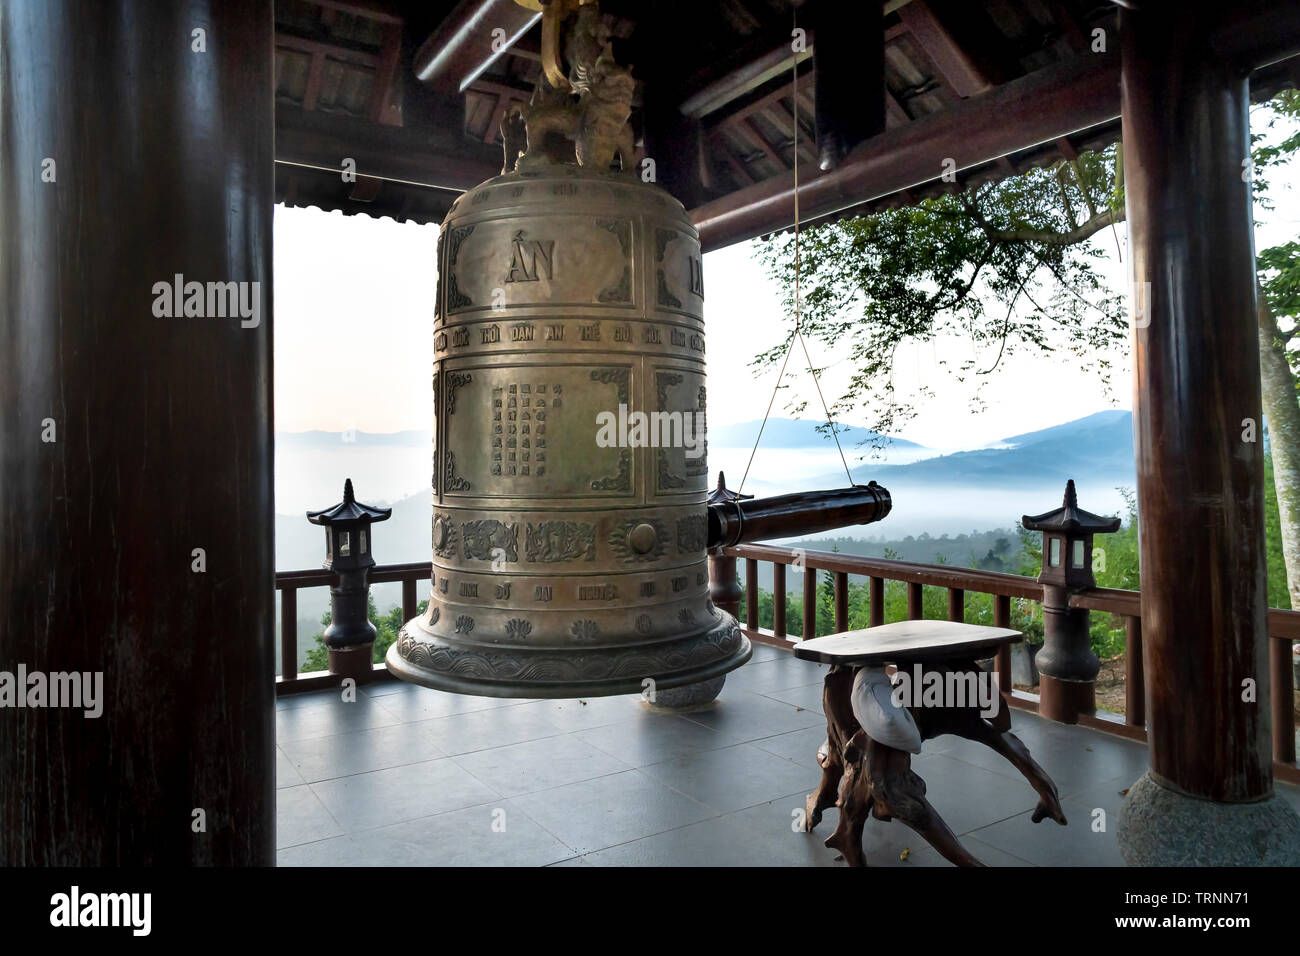 'Linh Quy Phap An' temple, Bao Loc town, Lam Dong Province, Vietnam - Jun 2, 2019: the bell tower at 'Linh Qui Phap An' temple, near Bao Loc town, Lam - Stock Image